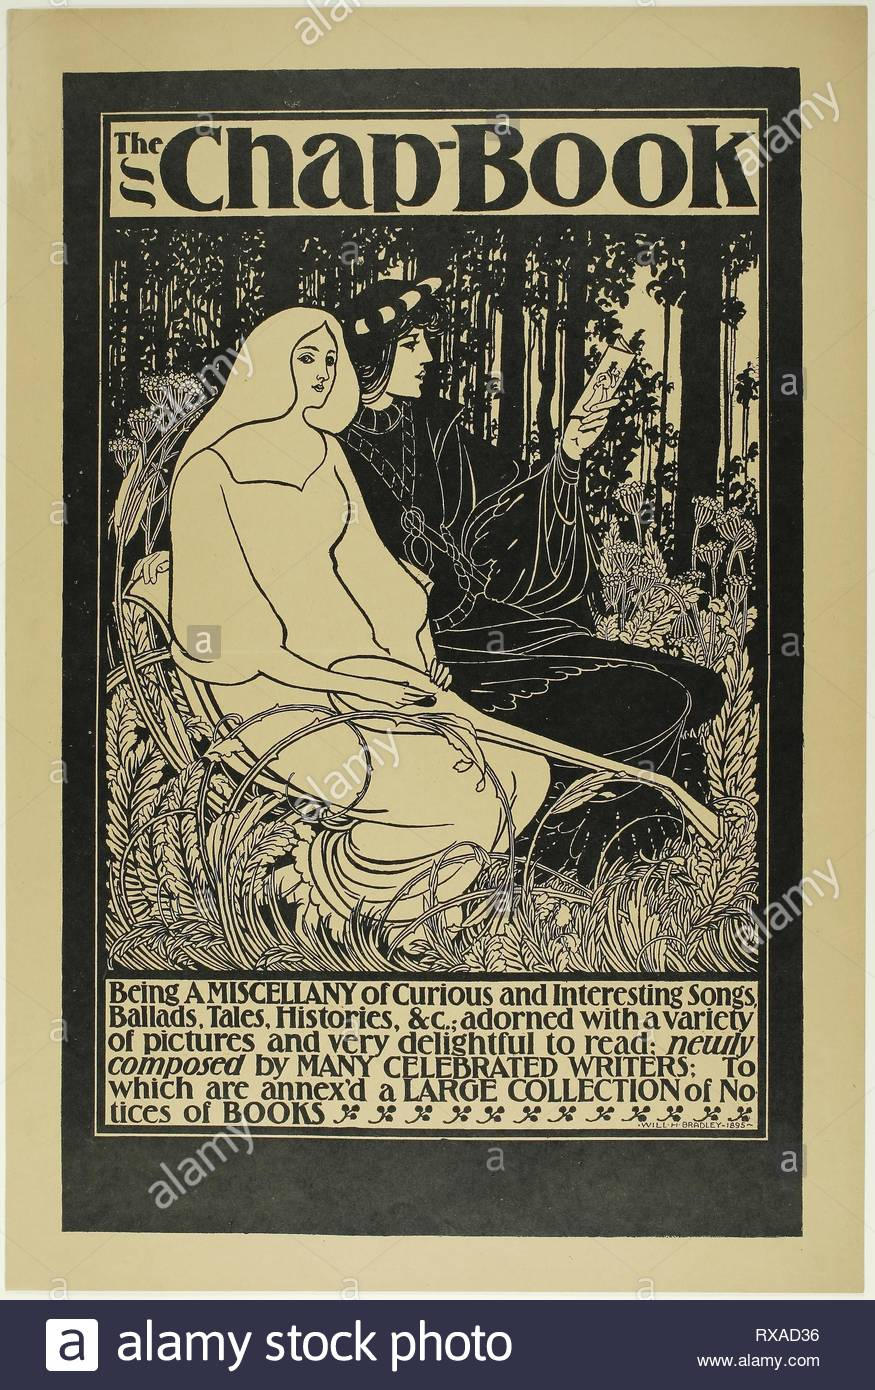 The Poet and his Lady. William H. Bradley; American, 1868-1962. Date: 1894-1895. Dimensions: 495 x 315 mm (image); 545 x 365 mm (sheet). Zincograph on paper. Origin: United States. Museum: The Chicago Art Institute. - Stock Image